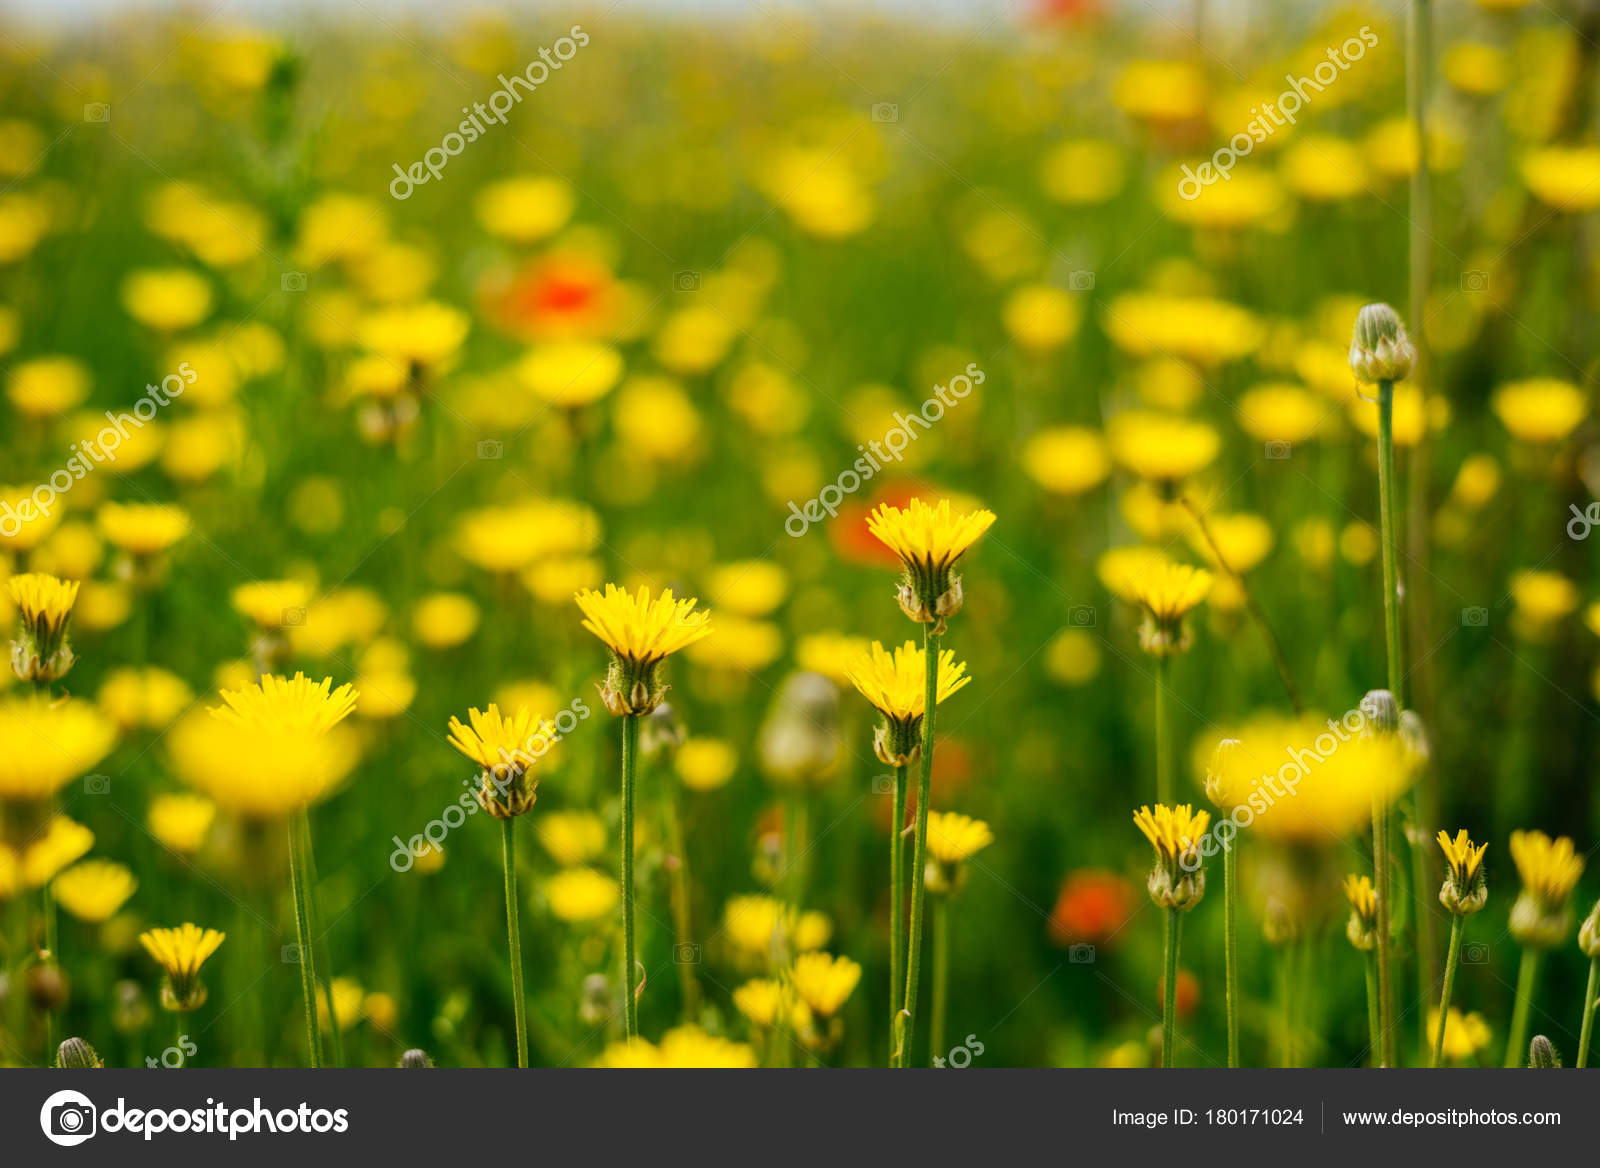 On The Endless Green Field Grow Fragrant Yellow Flowers Summer